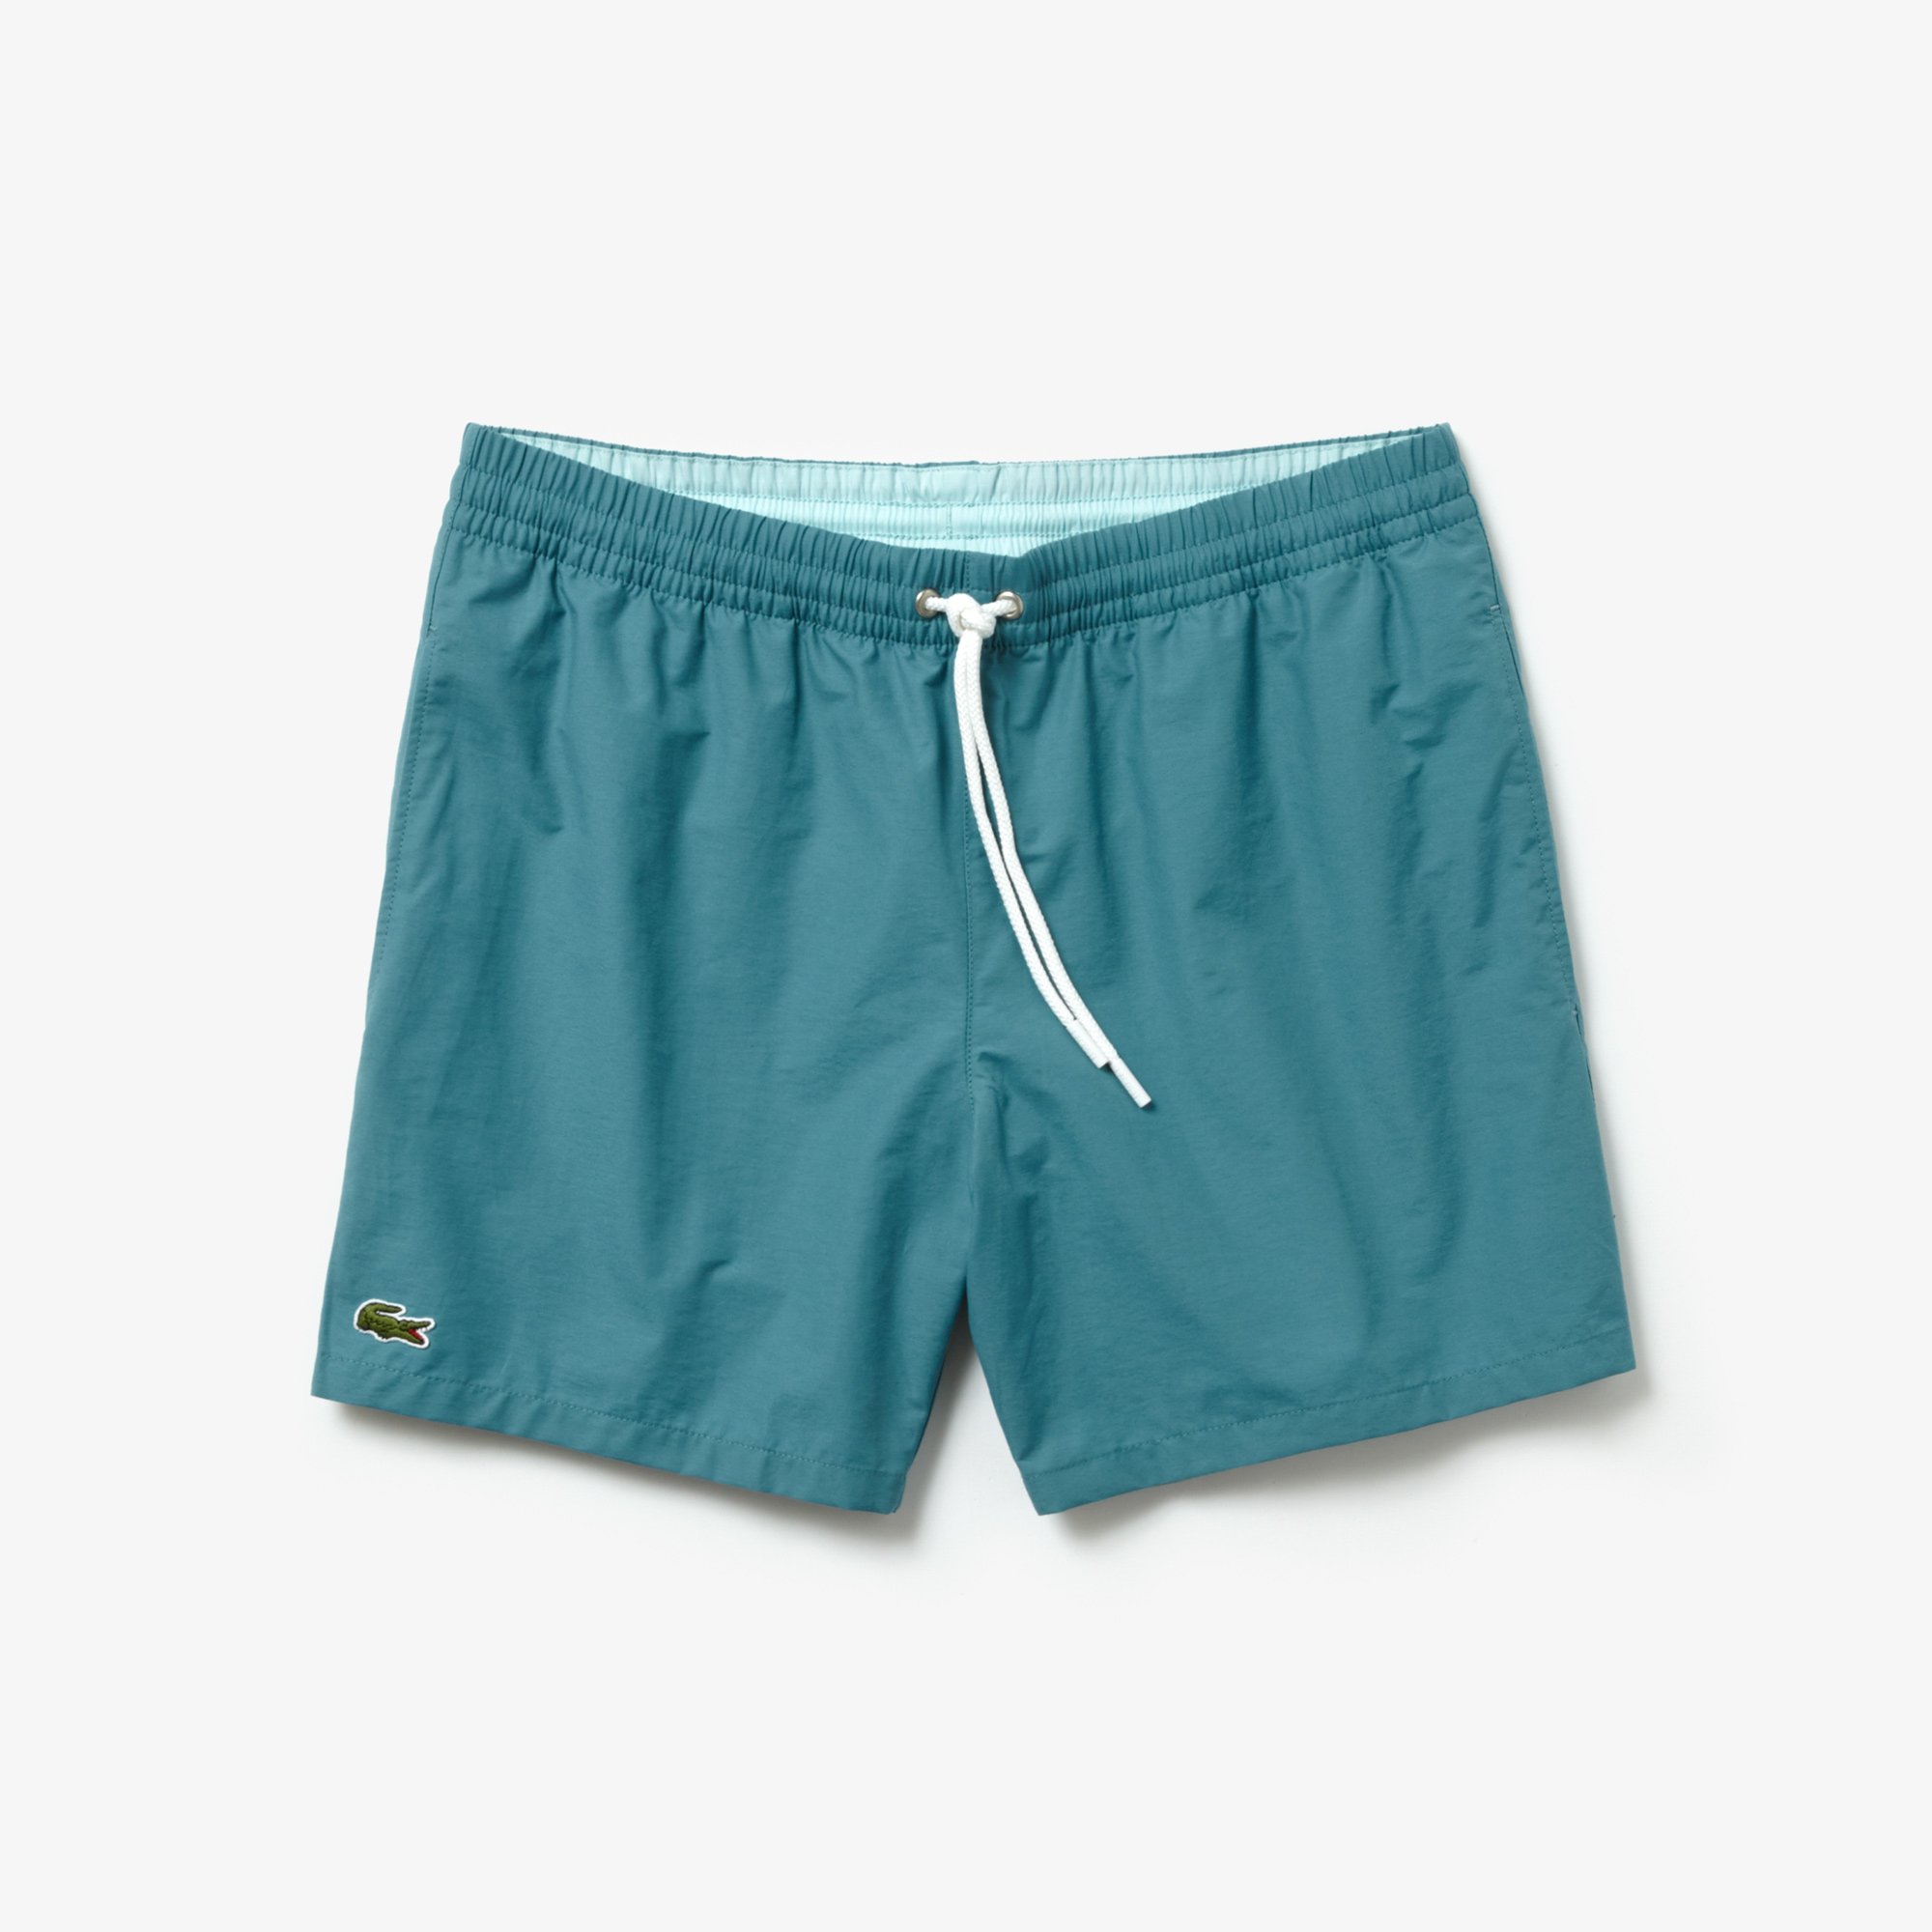 Color Lacoste Swim Shorts//Trunks Brand New Yellow